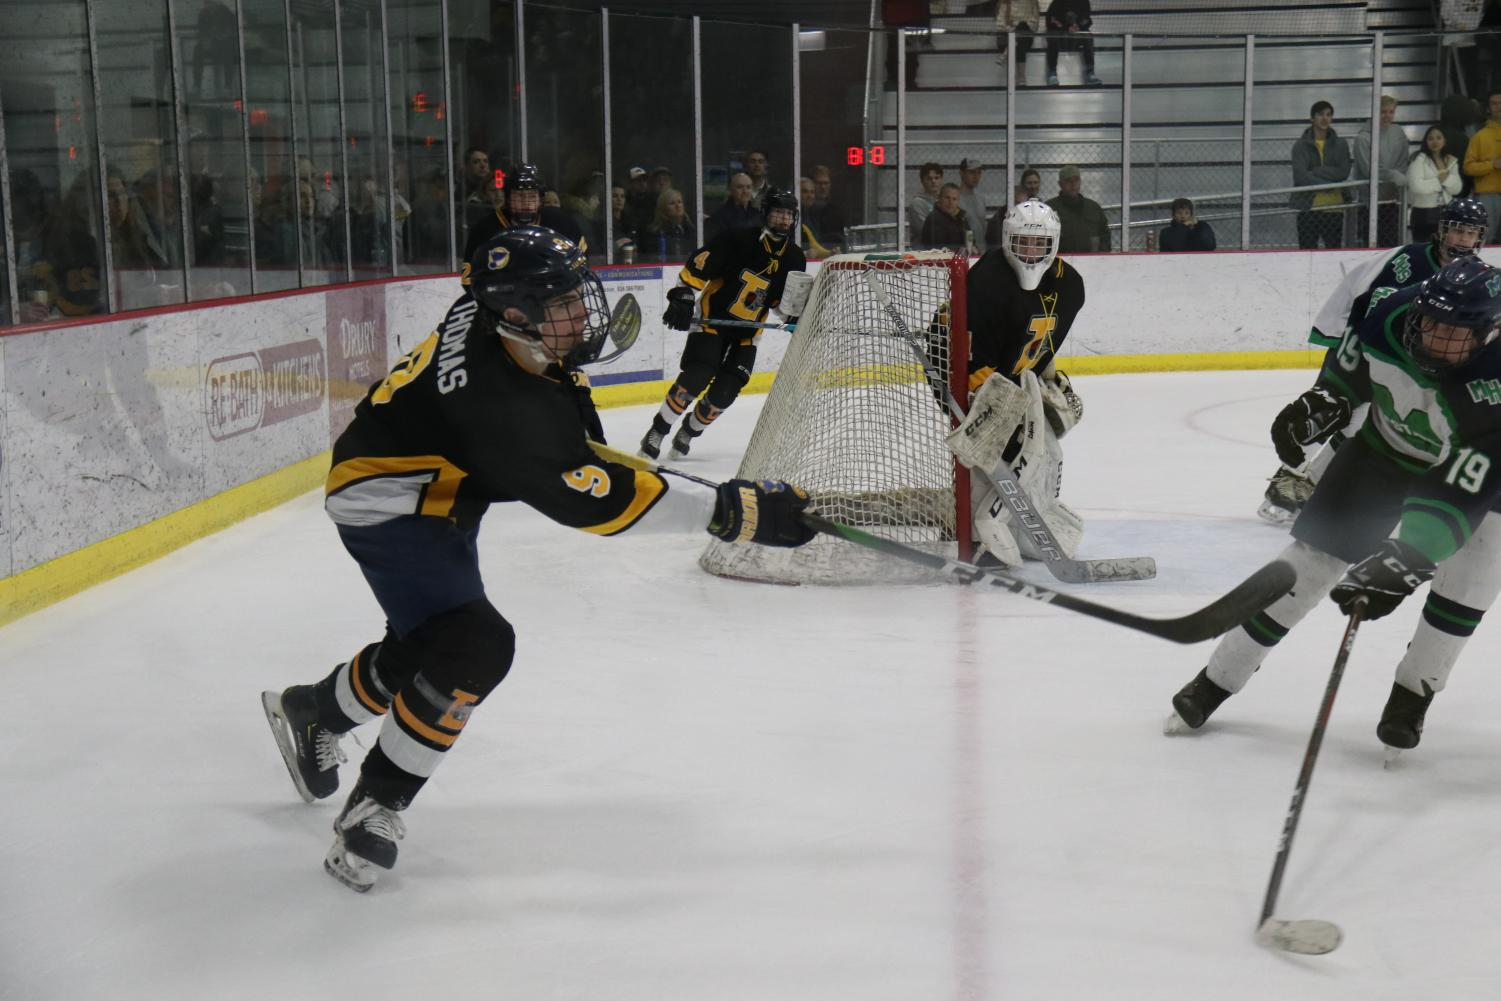 Junior, Jack Thomas,  helps defend the goal during the game against Marquette on Feb 10, to move on to the final four in the playoffs for the Challenge Cup.